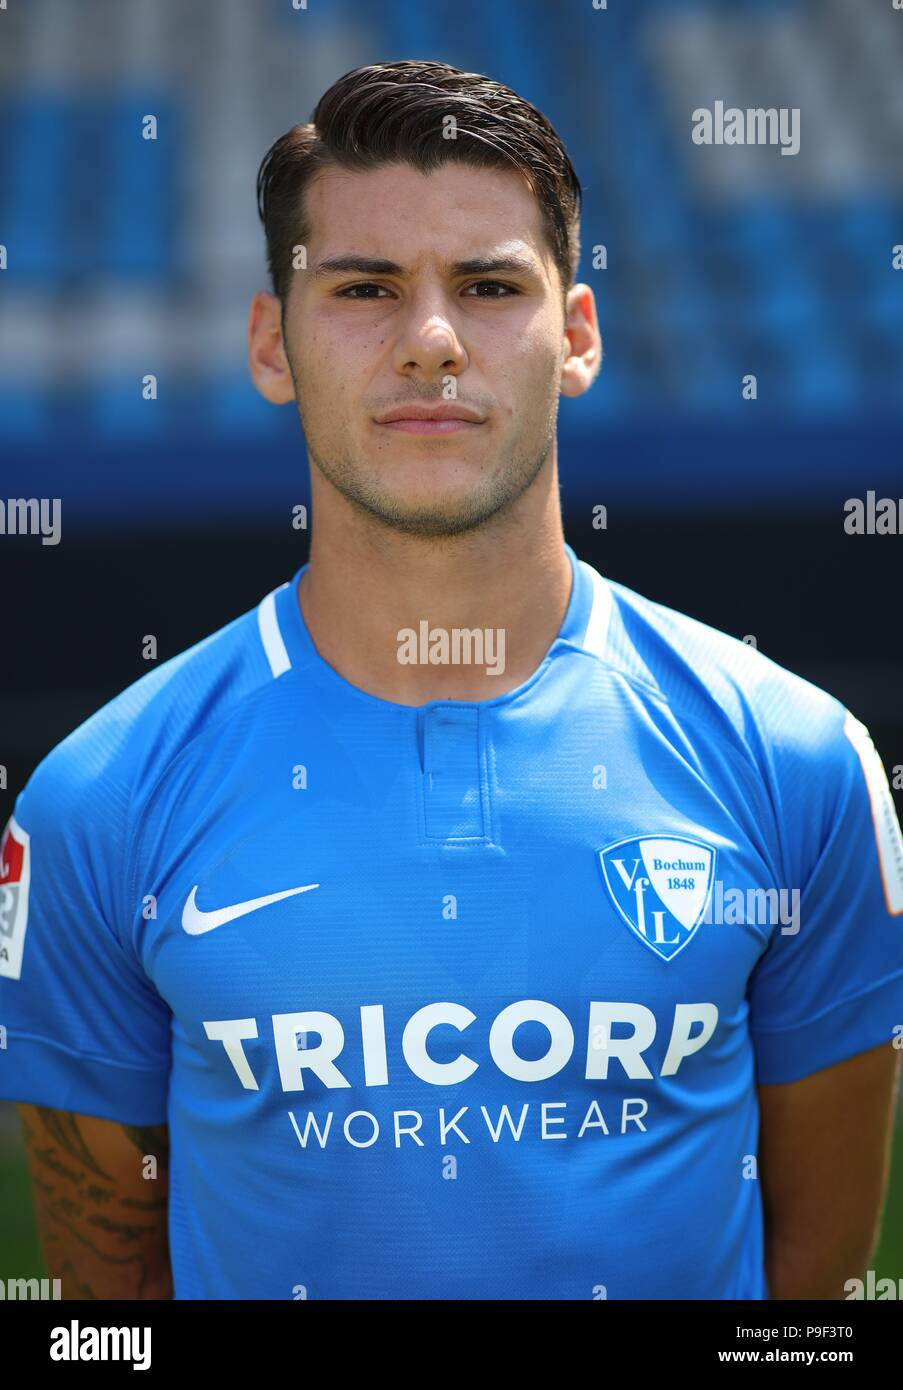 firo: 17.07.2018, football, 2.Bundesliga, season 2018/2019, VfL Bochum, photo shoot, portrait, portrait, Gorkem SAGLAM, | usage worldwide - Stock Image